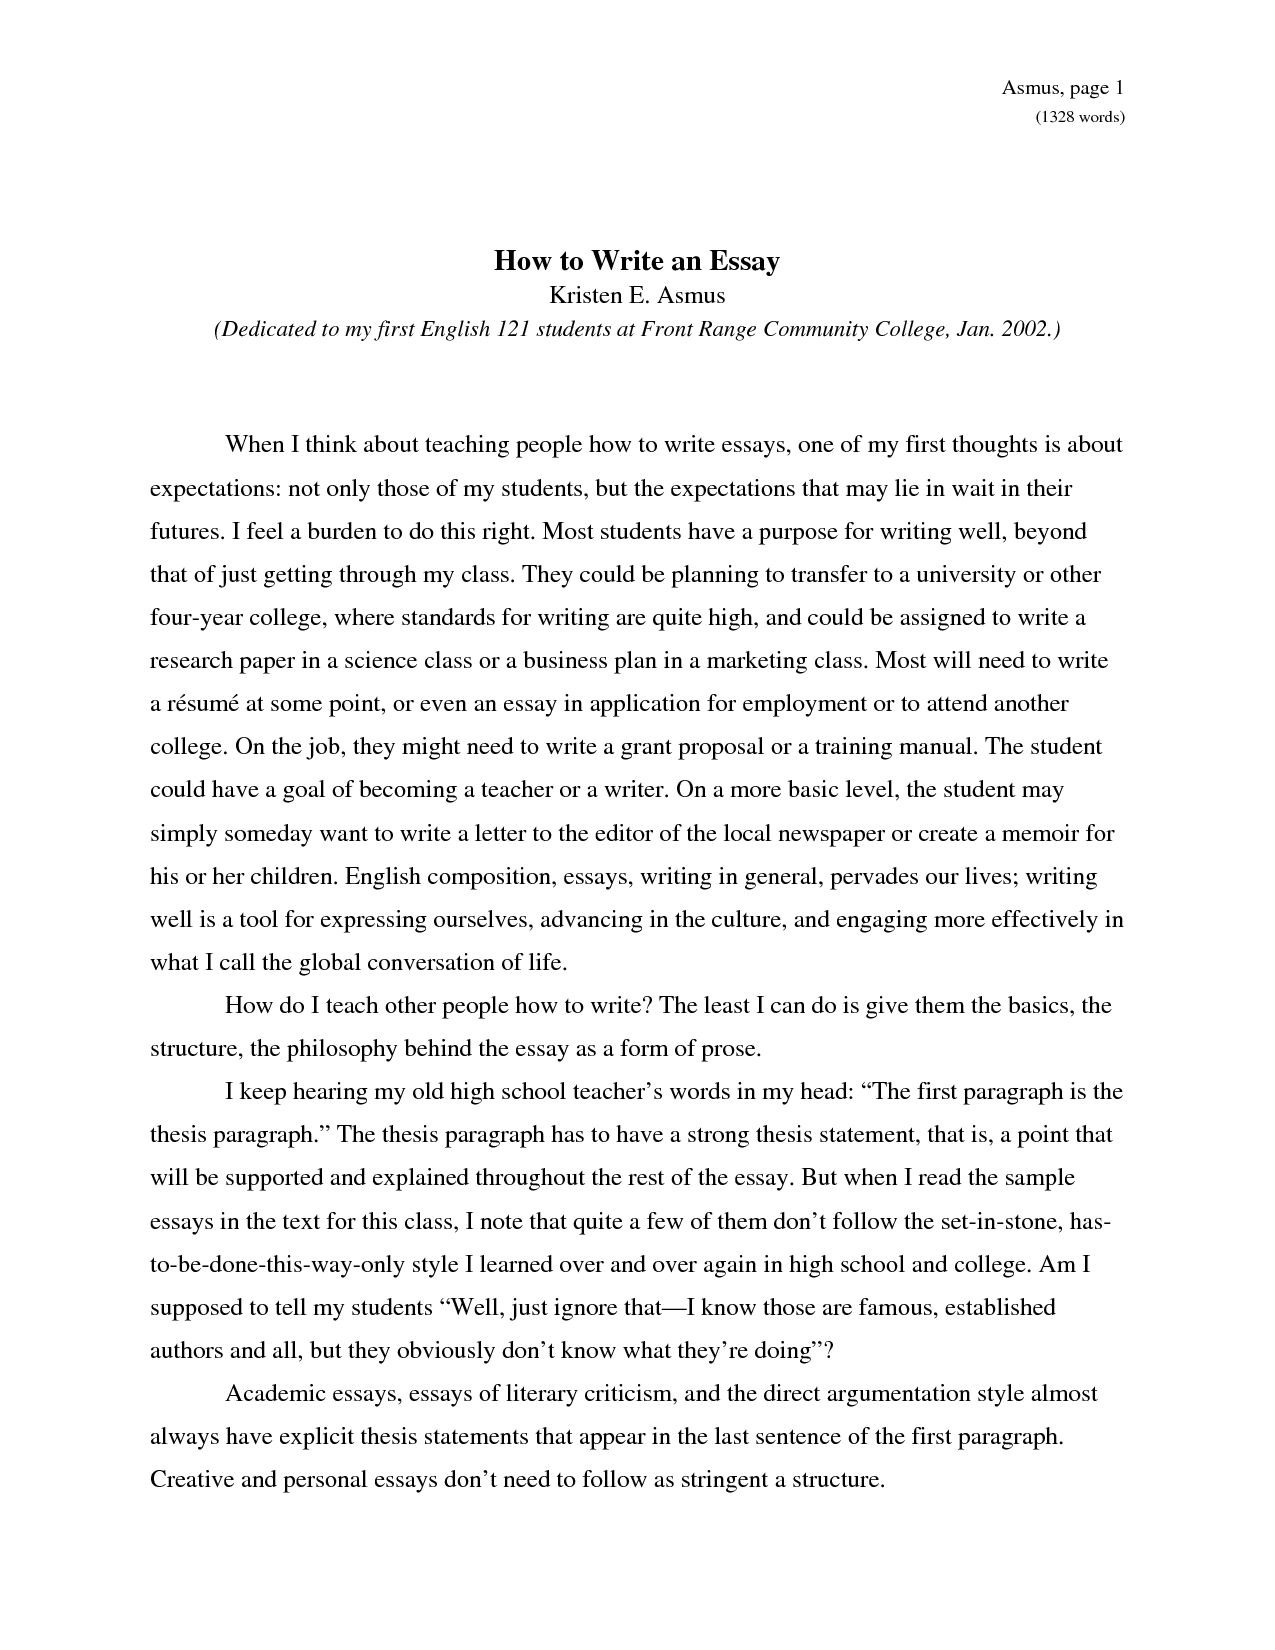 writing an essay using quotes Integrating quotes why use quotes in your essay the essay you write for class must be youressayit should be your own ideas and in your own words however, many essay assignments will ask.